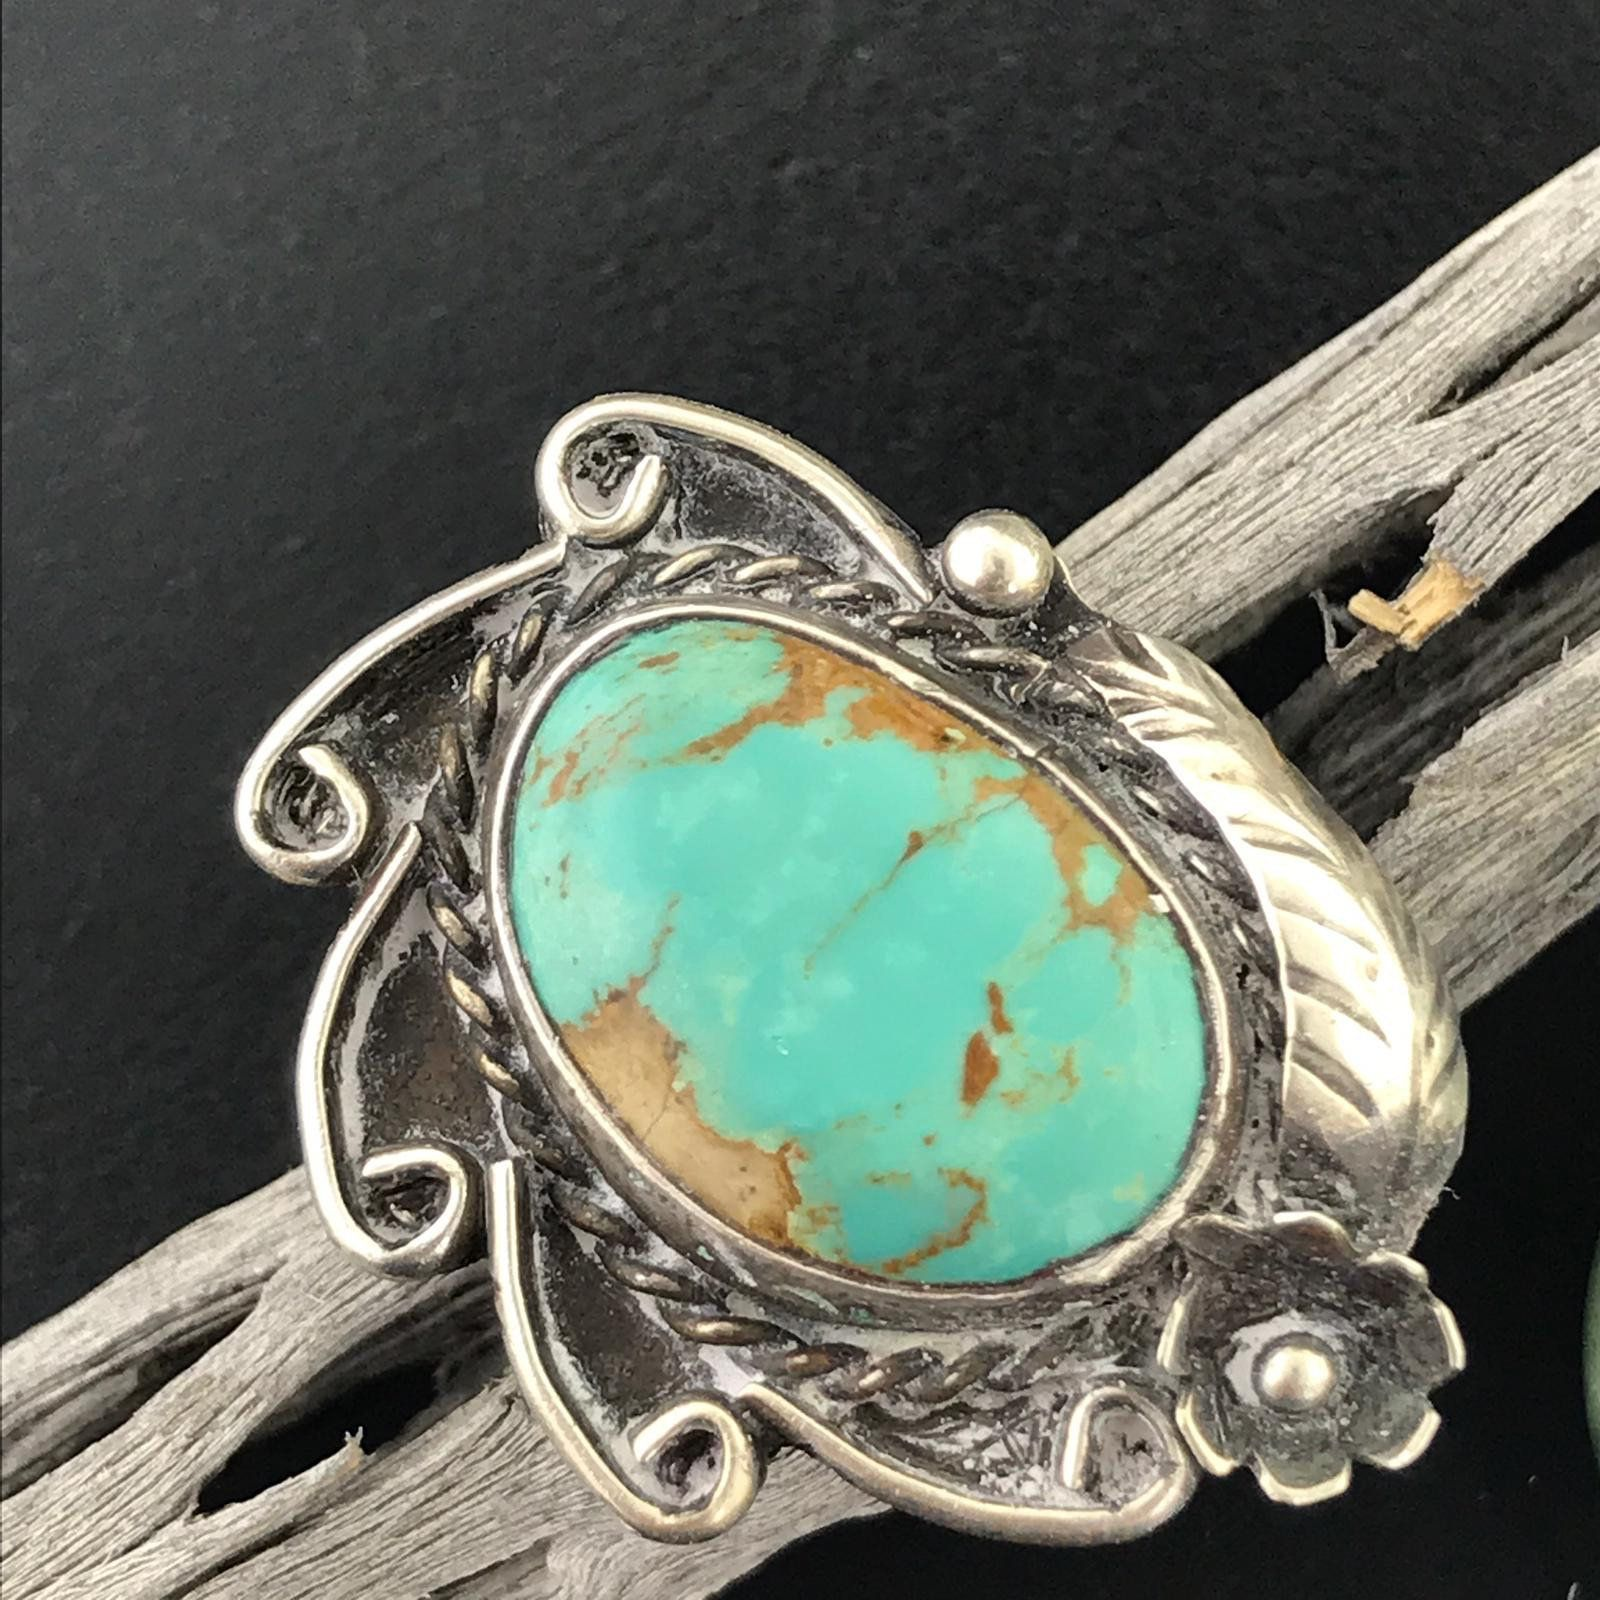 Turquoise Ladies Ring Silver Design Any Size Navajo Jewelry